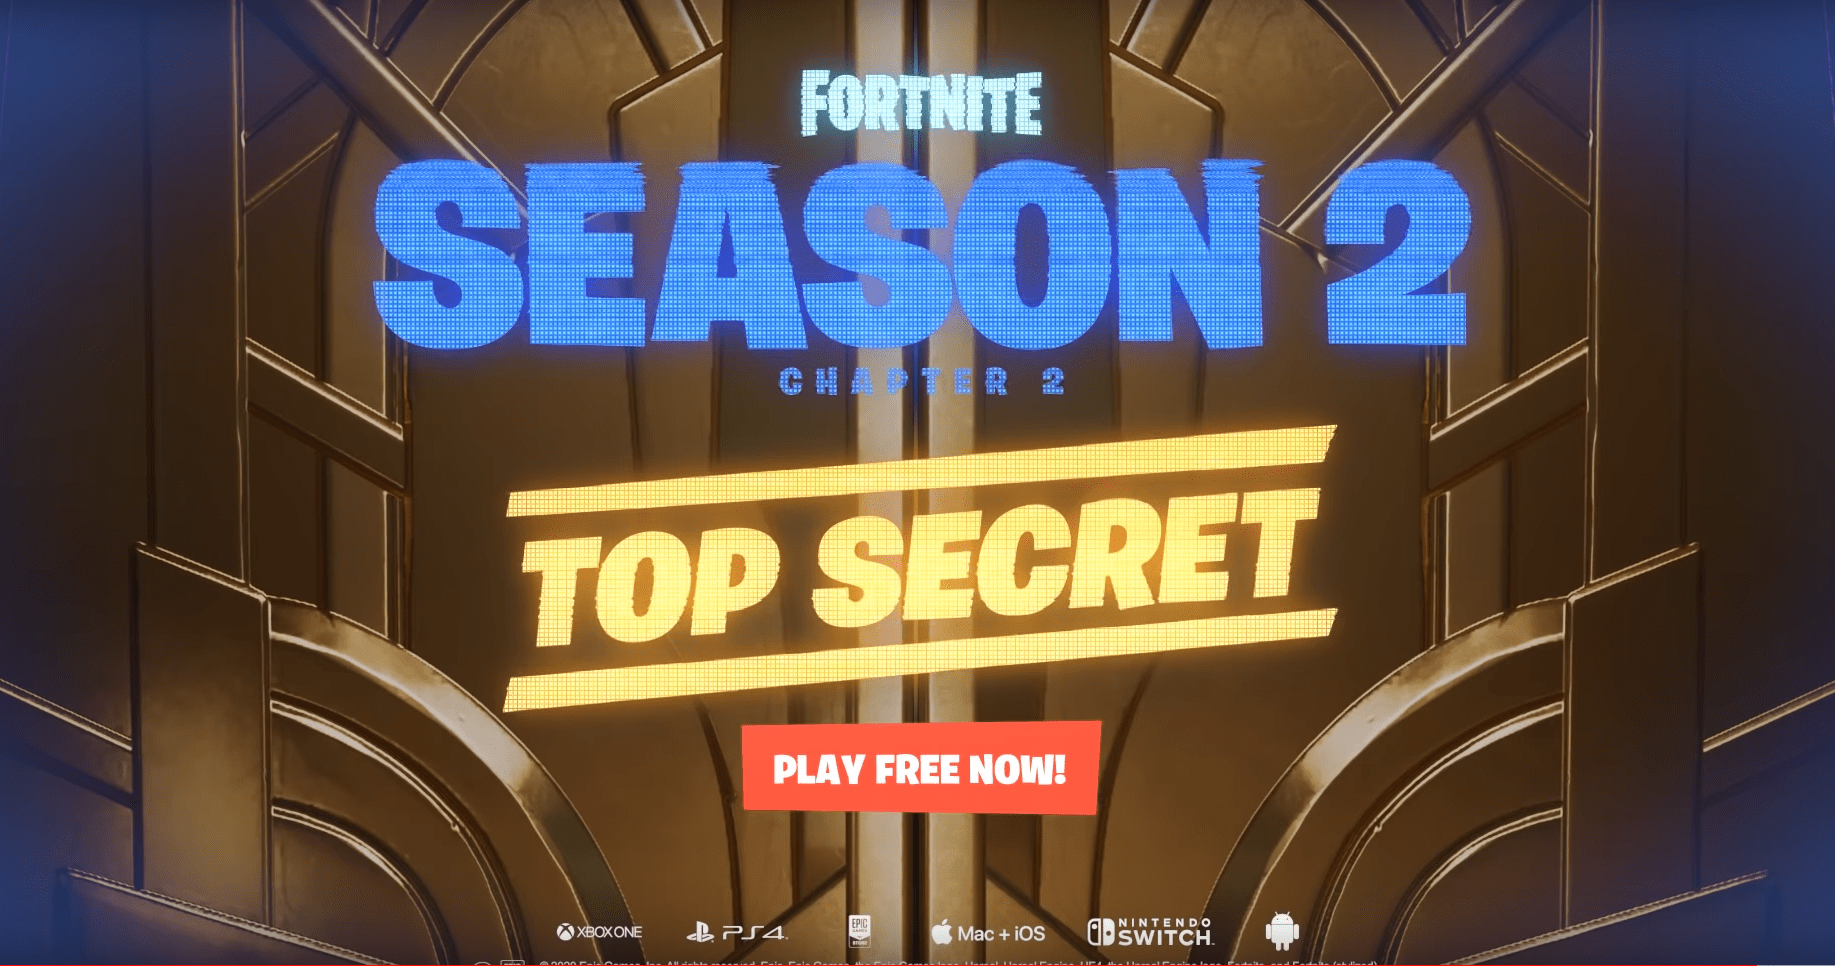 Fortnite Chapter 2 Season 2 Top Secret Trailer